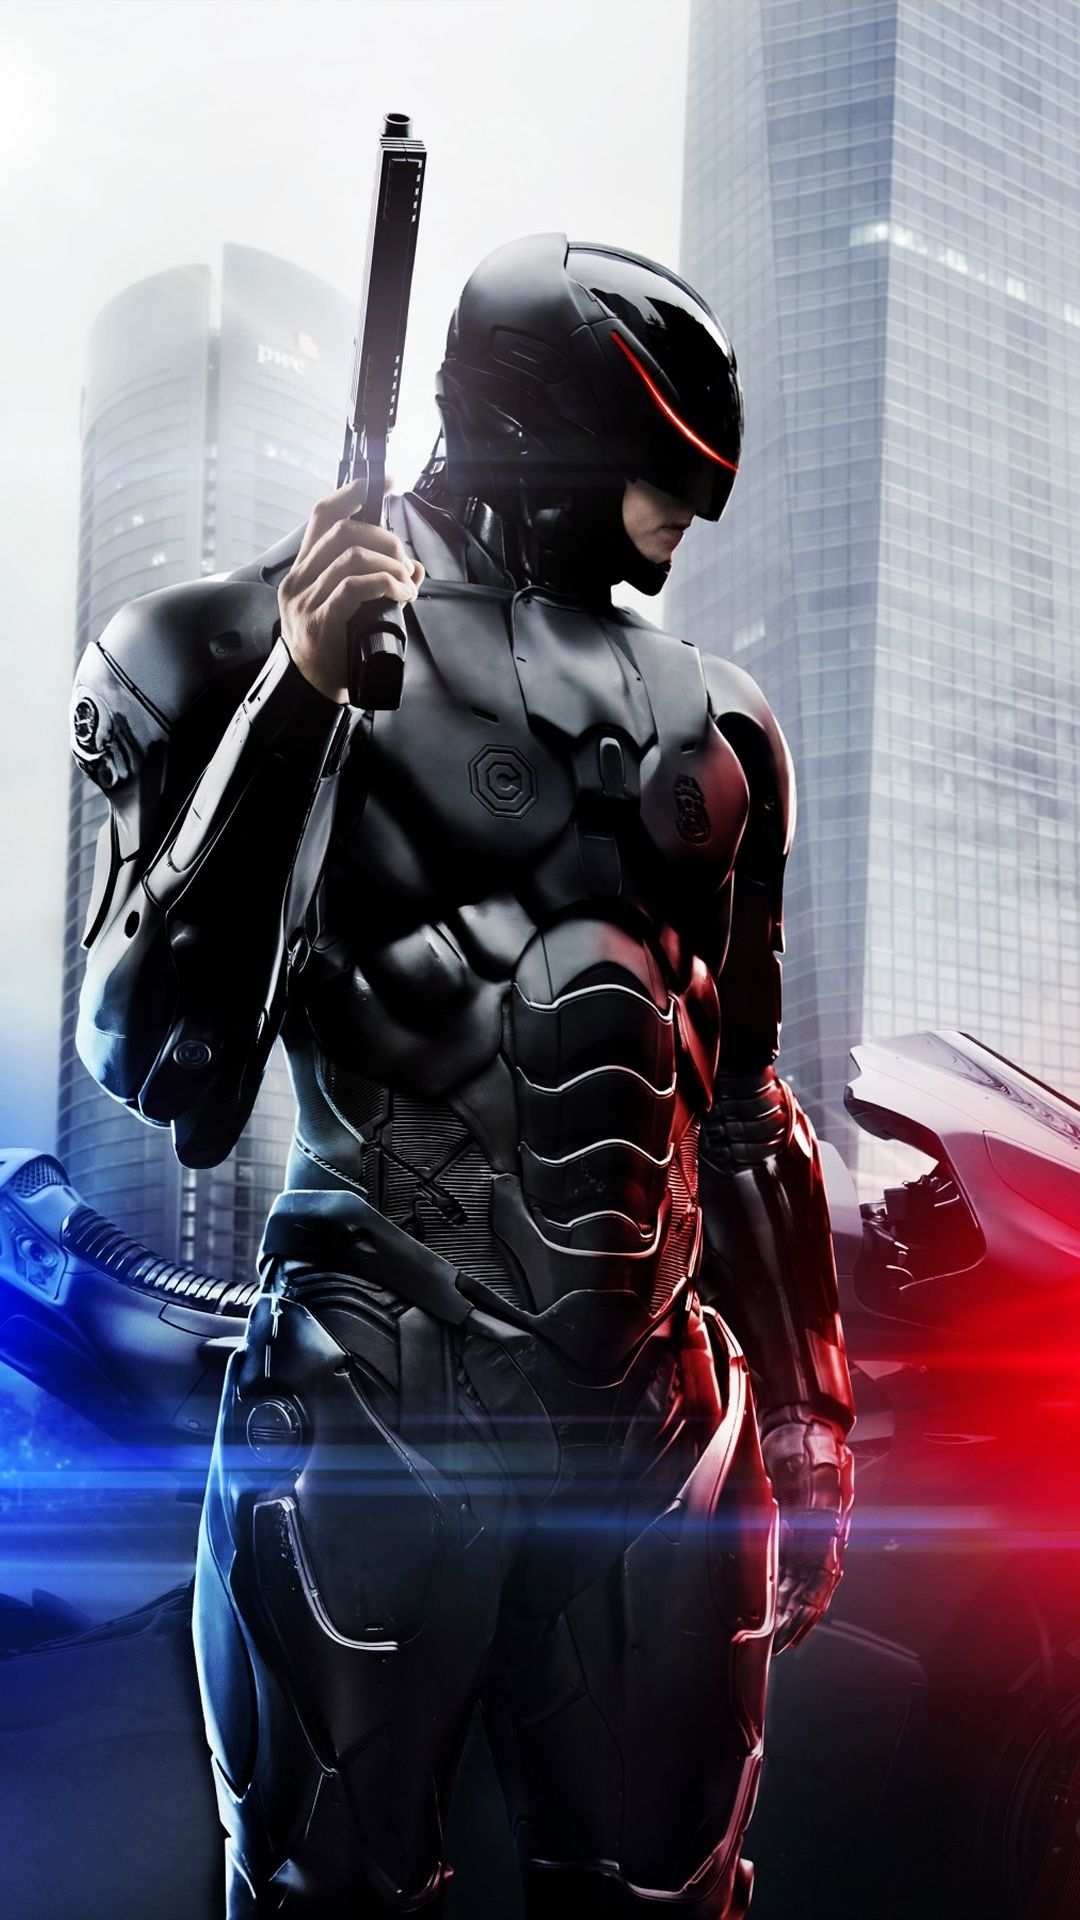 robocop 2014 poster #iphone #7 #wallpaper | iphone 8 wallpapers